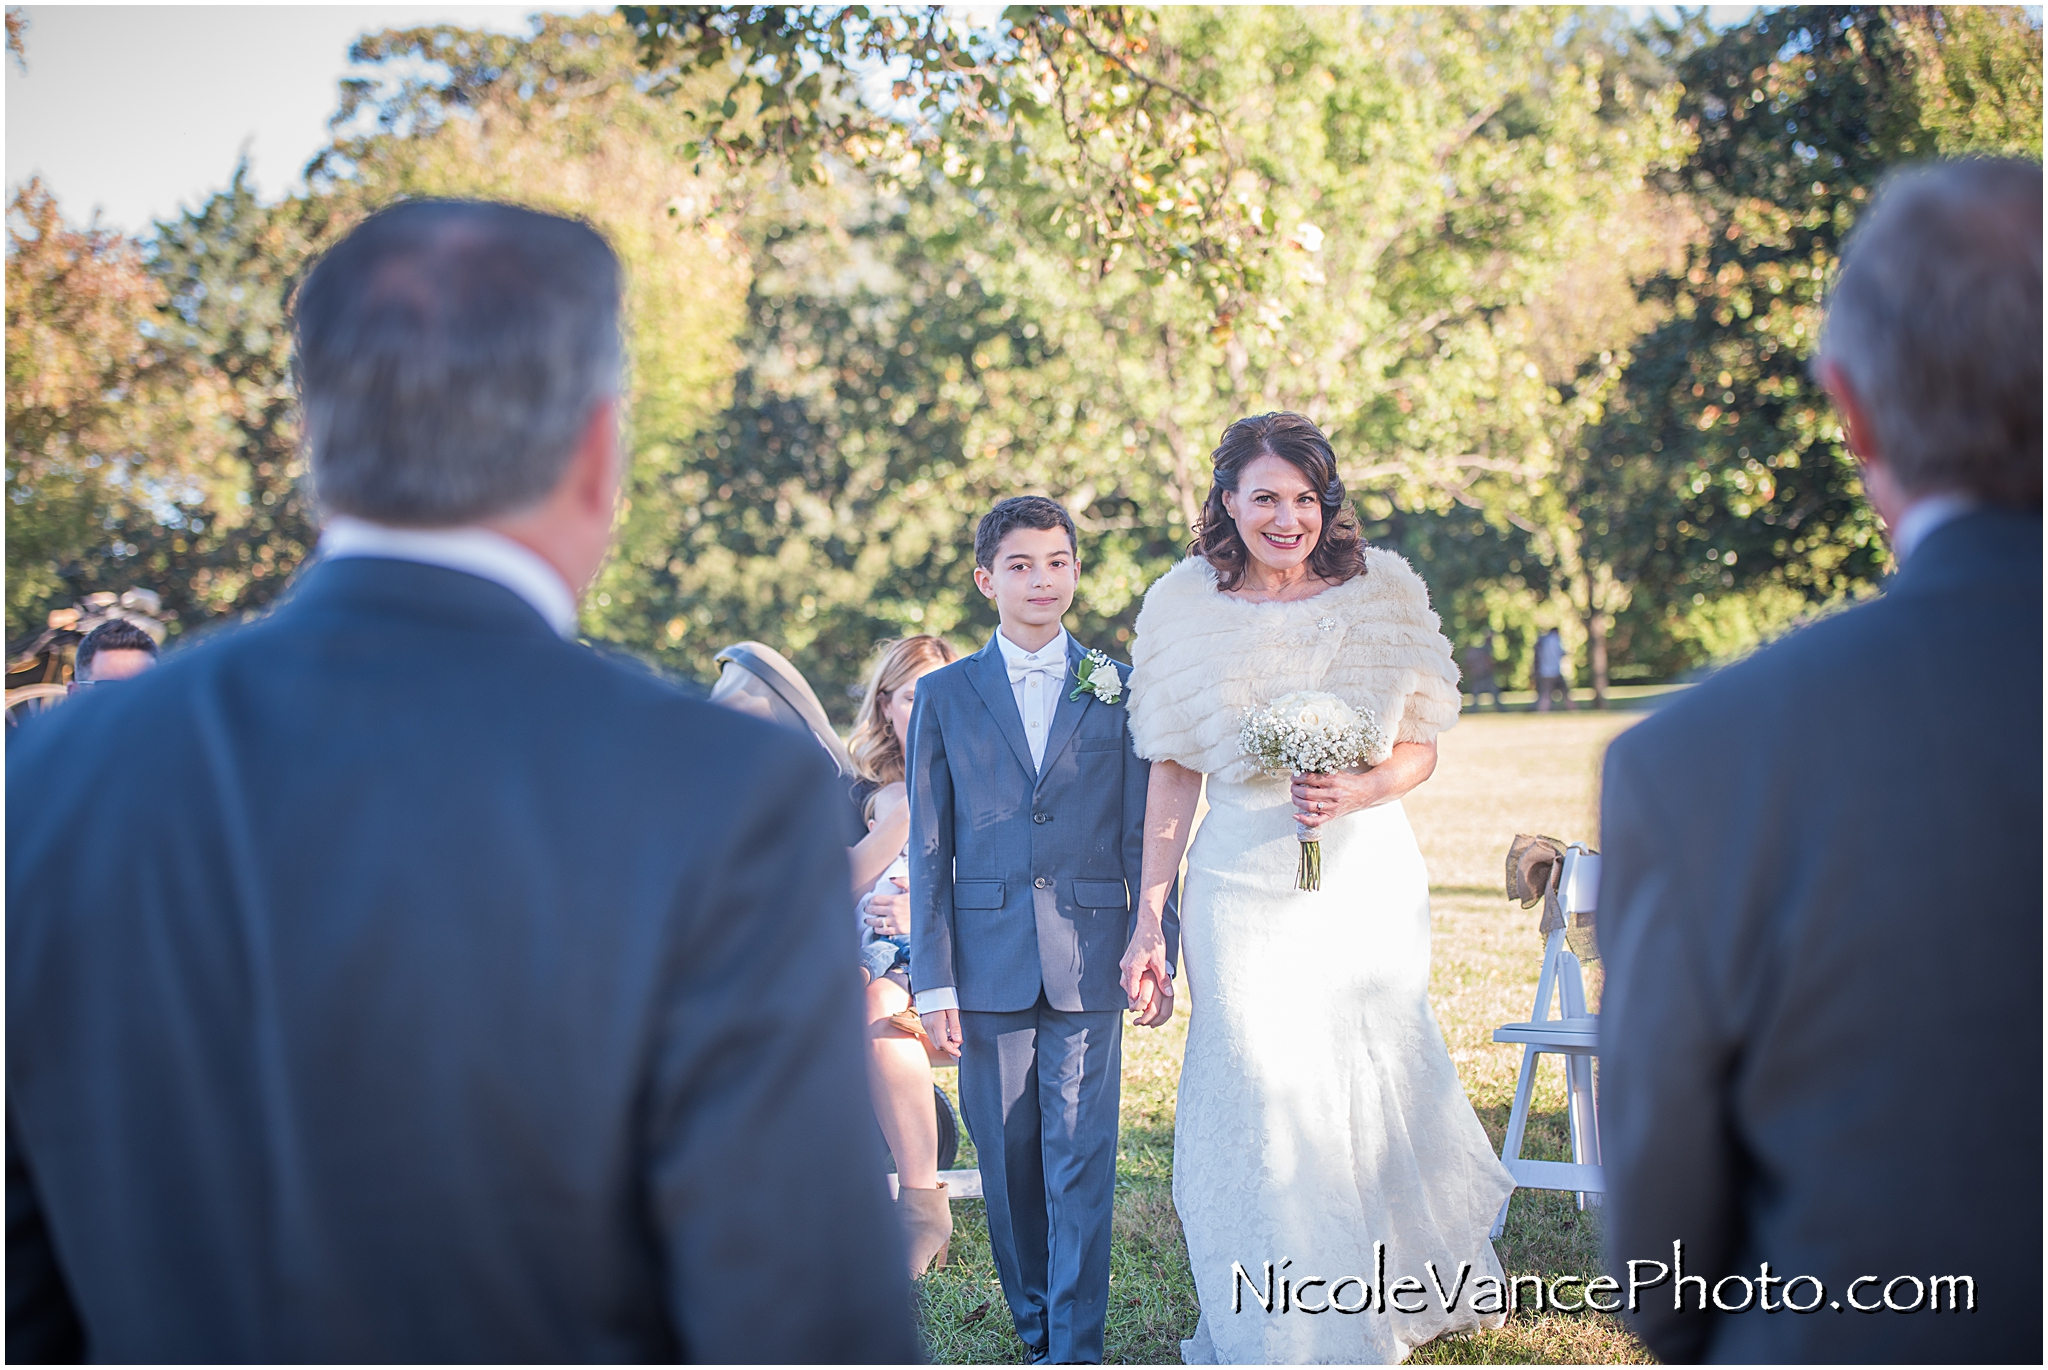 The bride walks down the aisle and smiles at her groom at Maymont Park.